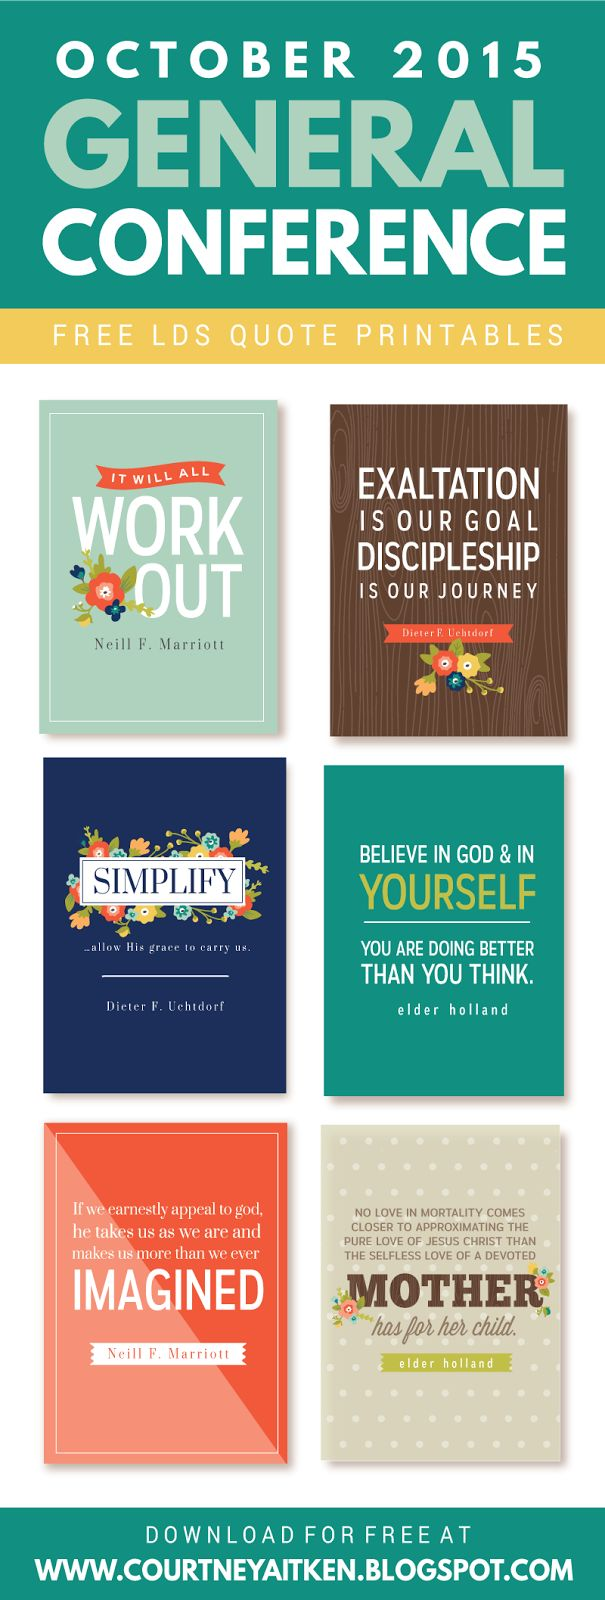 General Conference 2015 FREE Printable Quotes - I LOVE all of these!